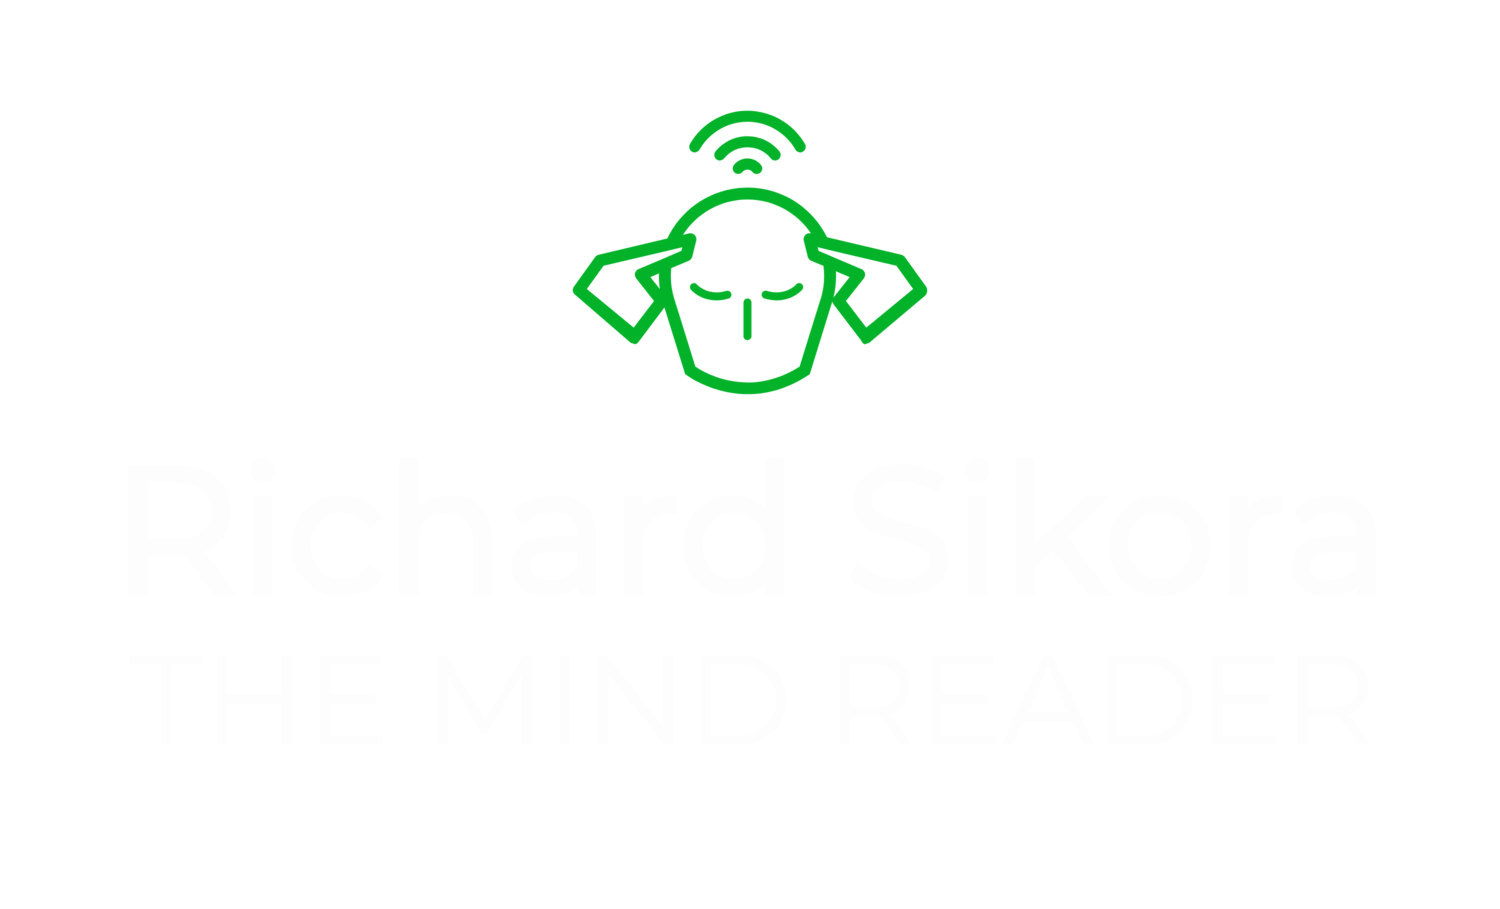 Richard Sikora - Mind Reader / Magical Entertainer for Weddings, Parties and Corporate Events